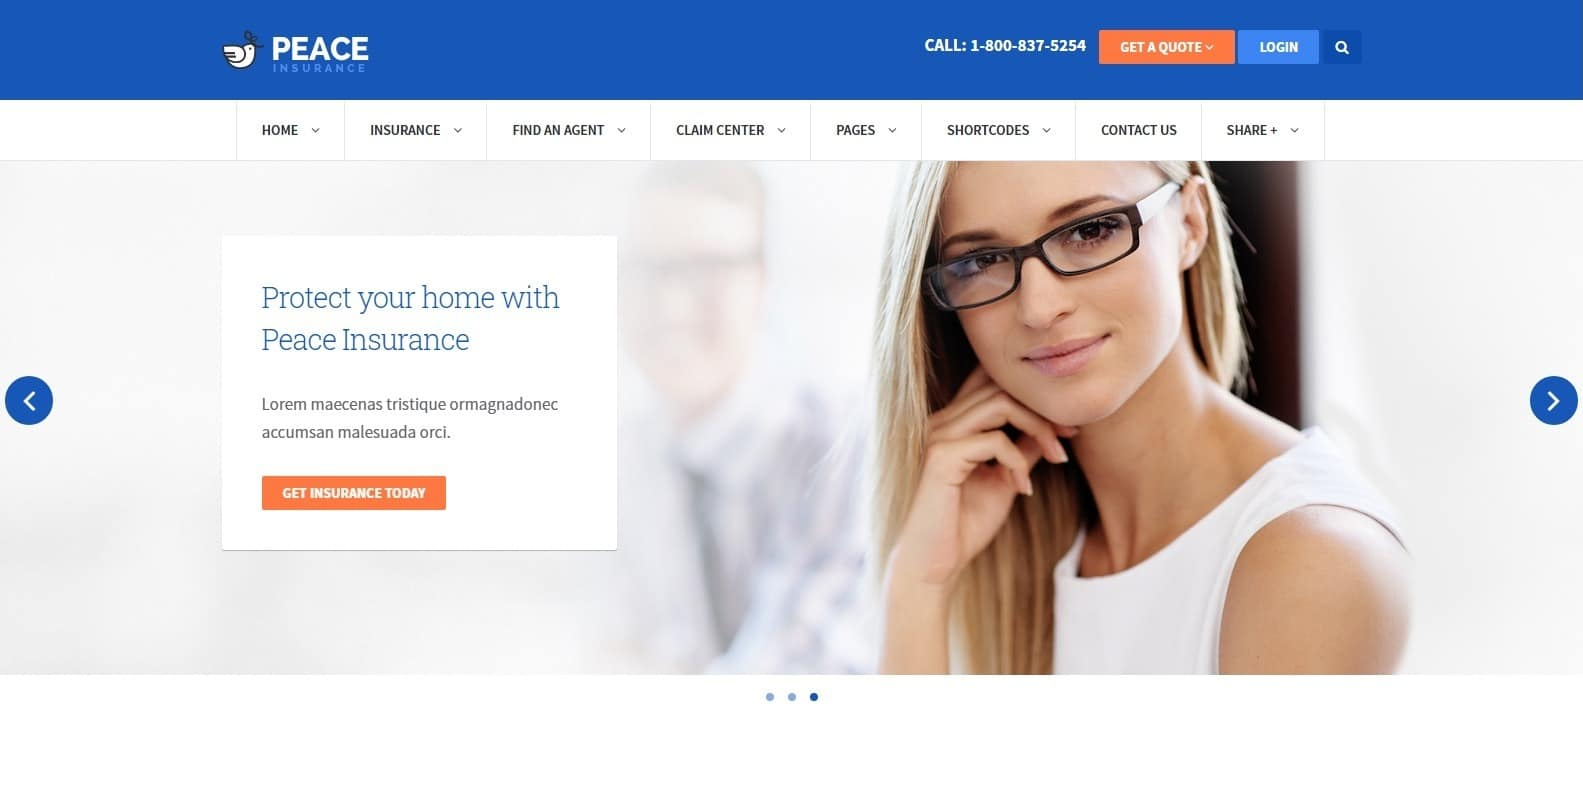 peace-wordpress-mortgage-broker-website-template